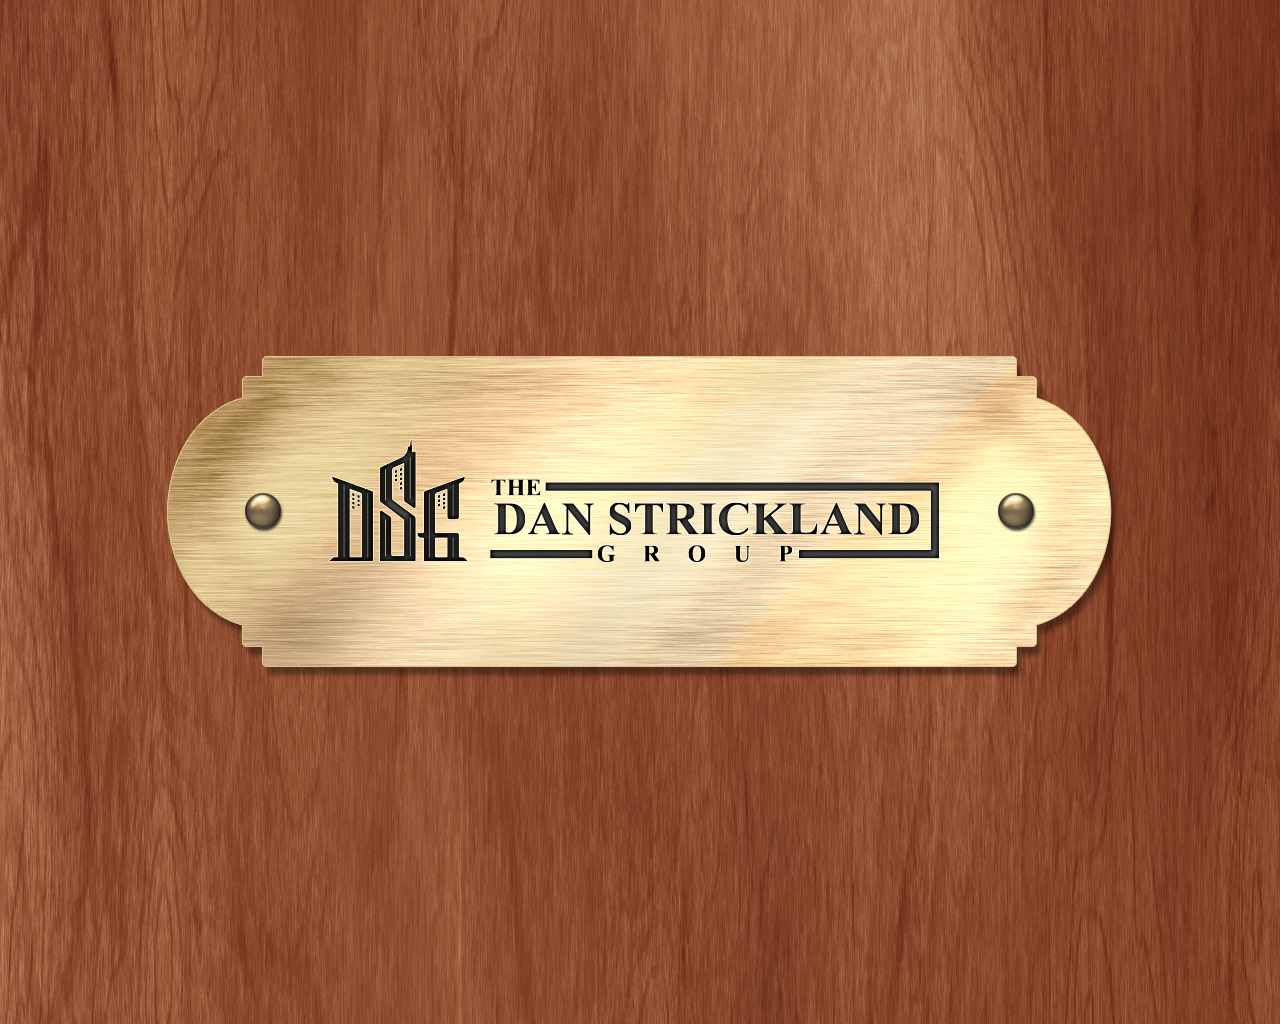 Logo Design by olii - Entry No. 275 in the Logo Design Contest Creative Logo Design for The Dan Strickland Group.